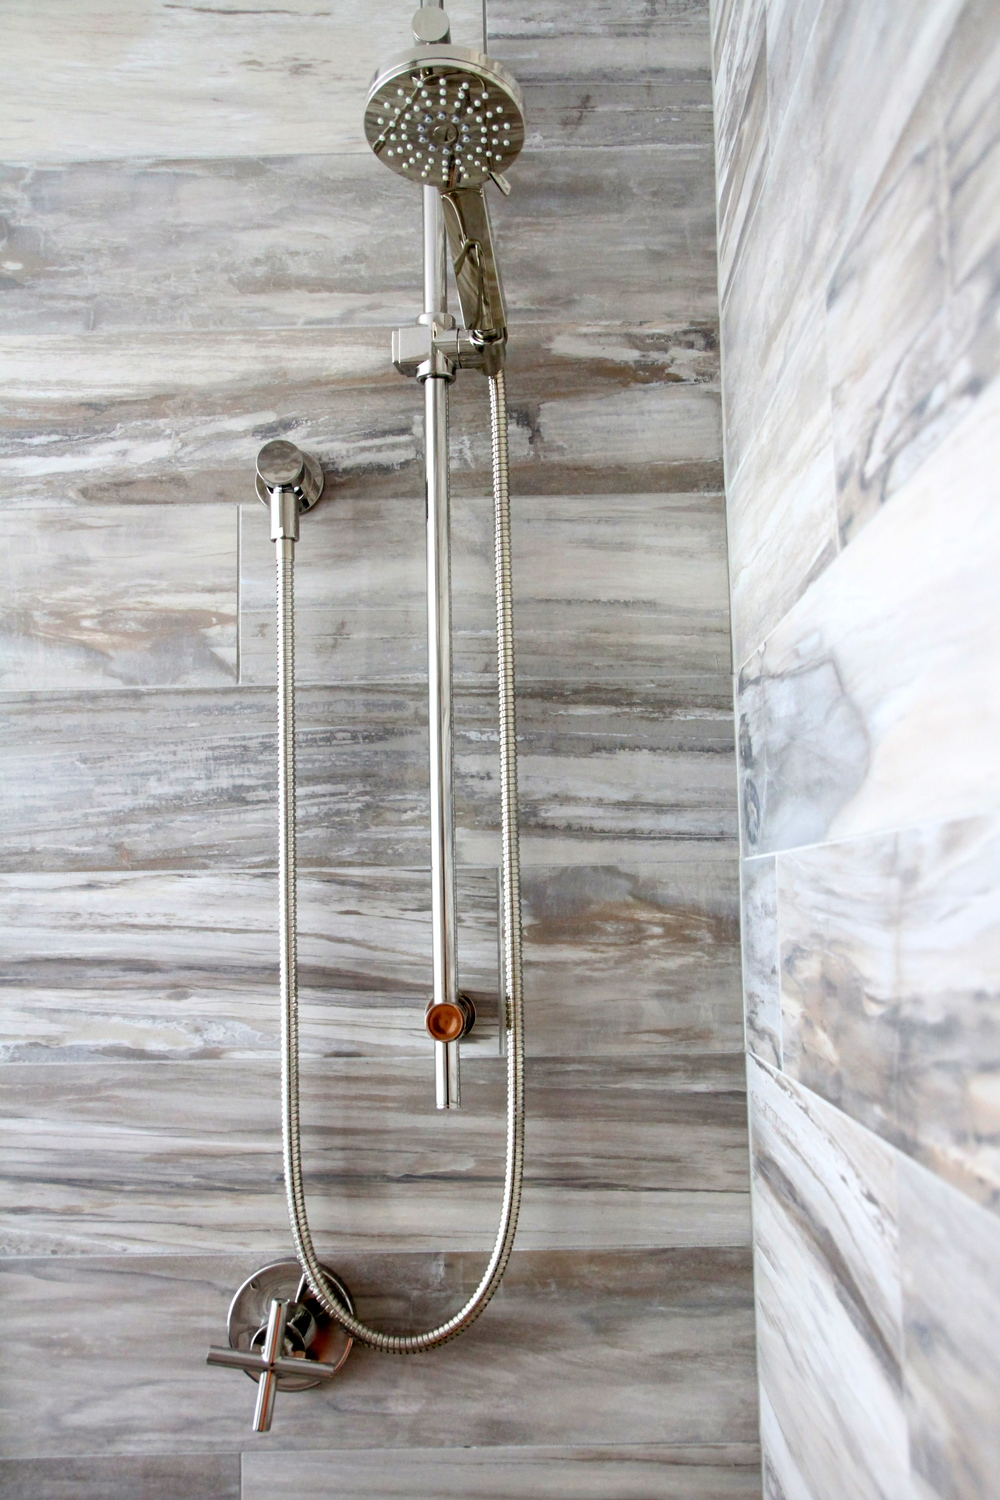 Master Bathroom Reveal. Riobel Shower Head.